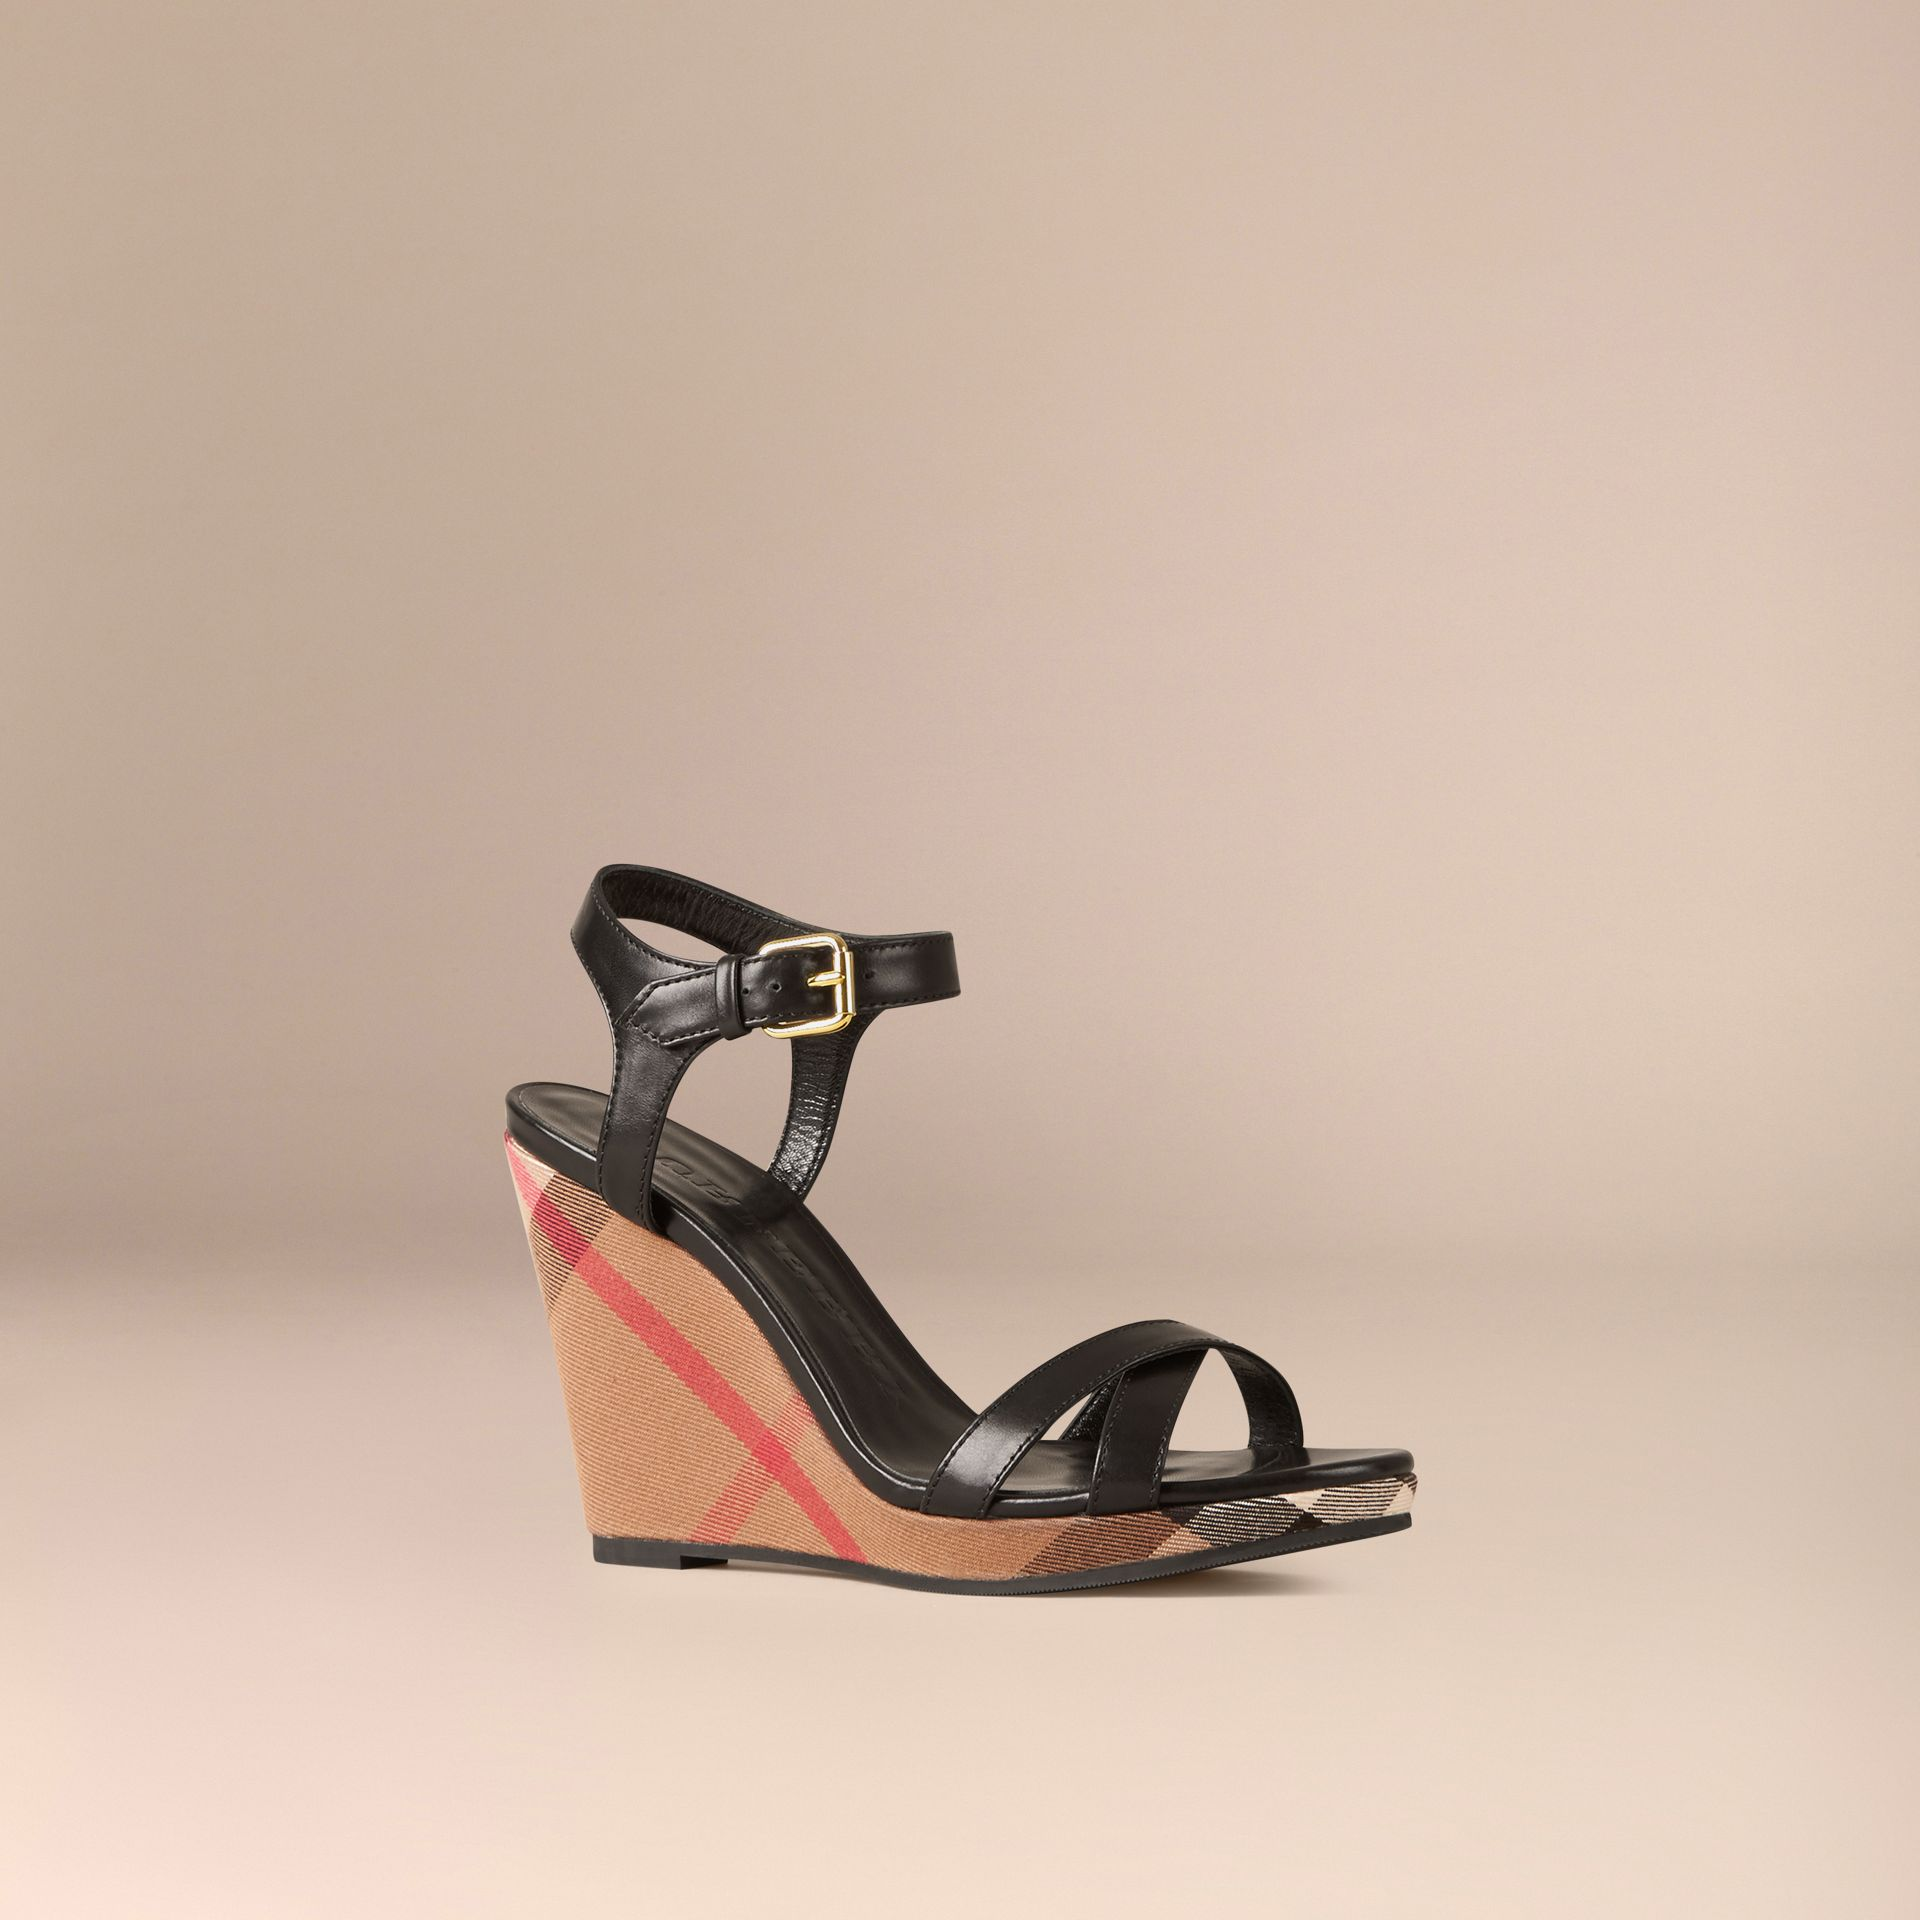 House Check and Leather Wedge Sandals in Black - Women | Burberry Canada - gallery image 1